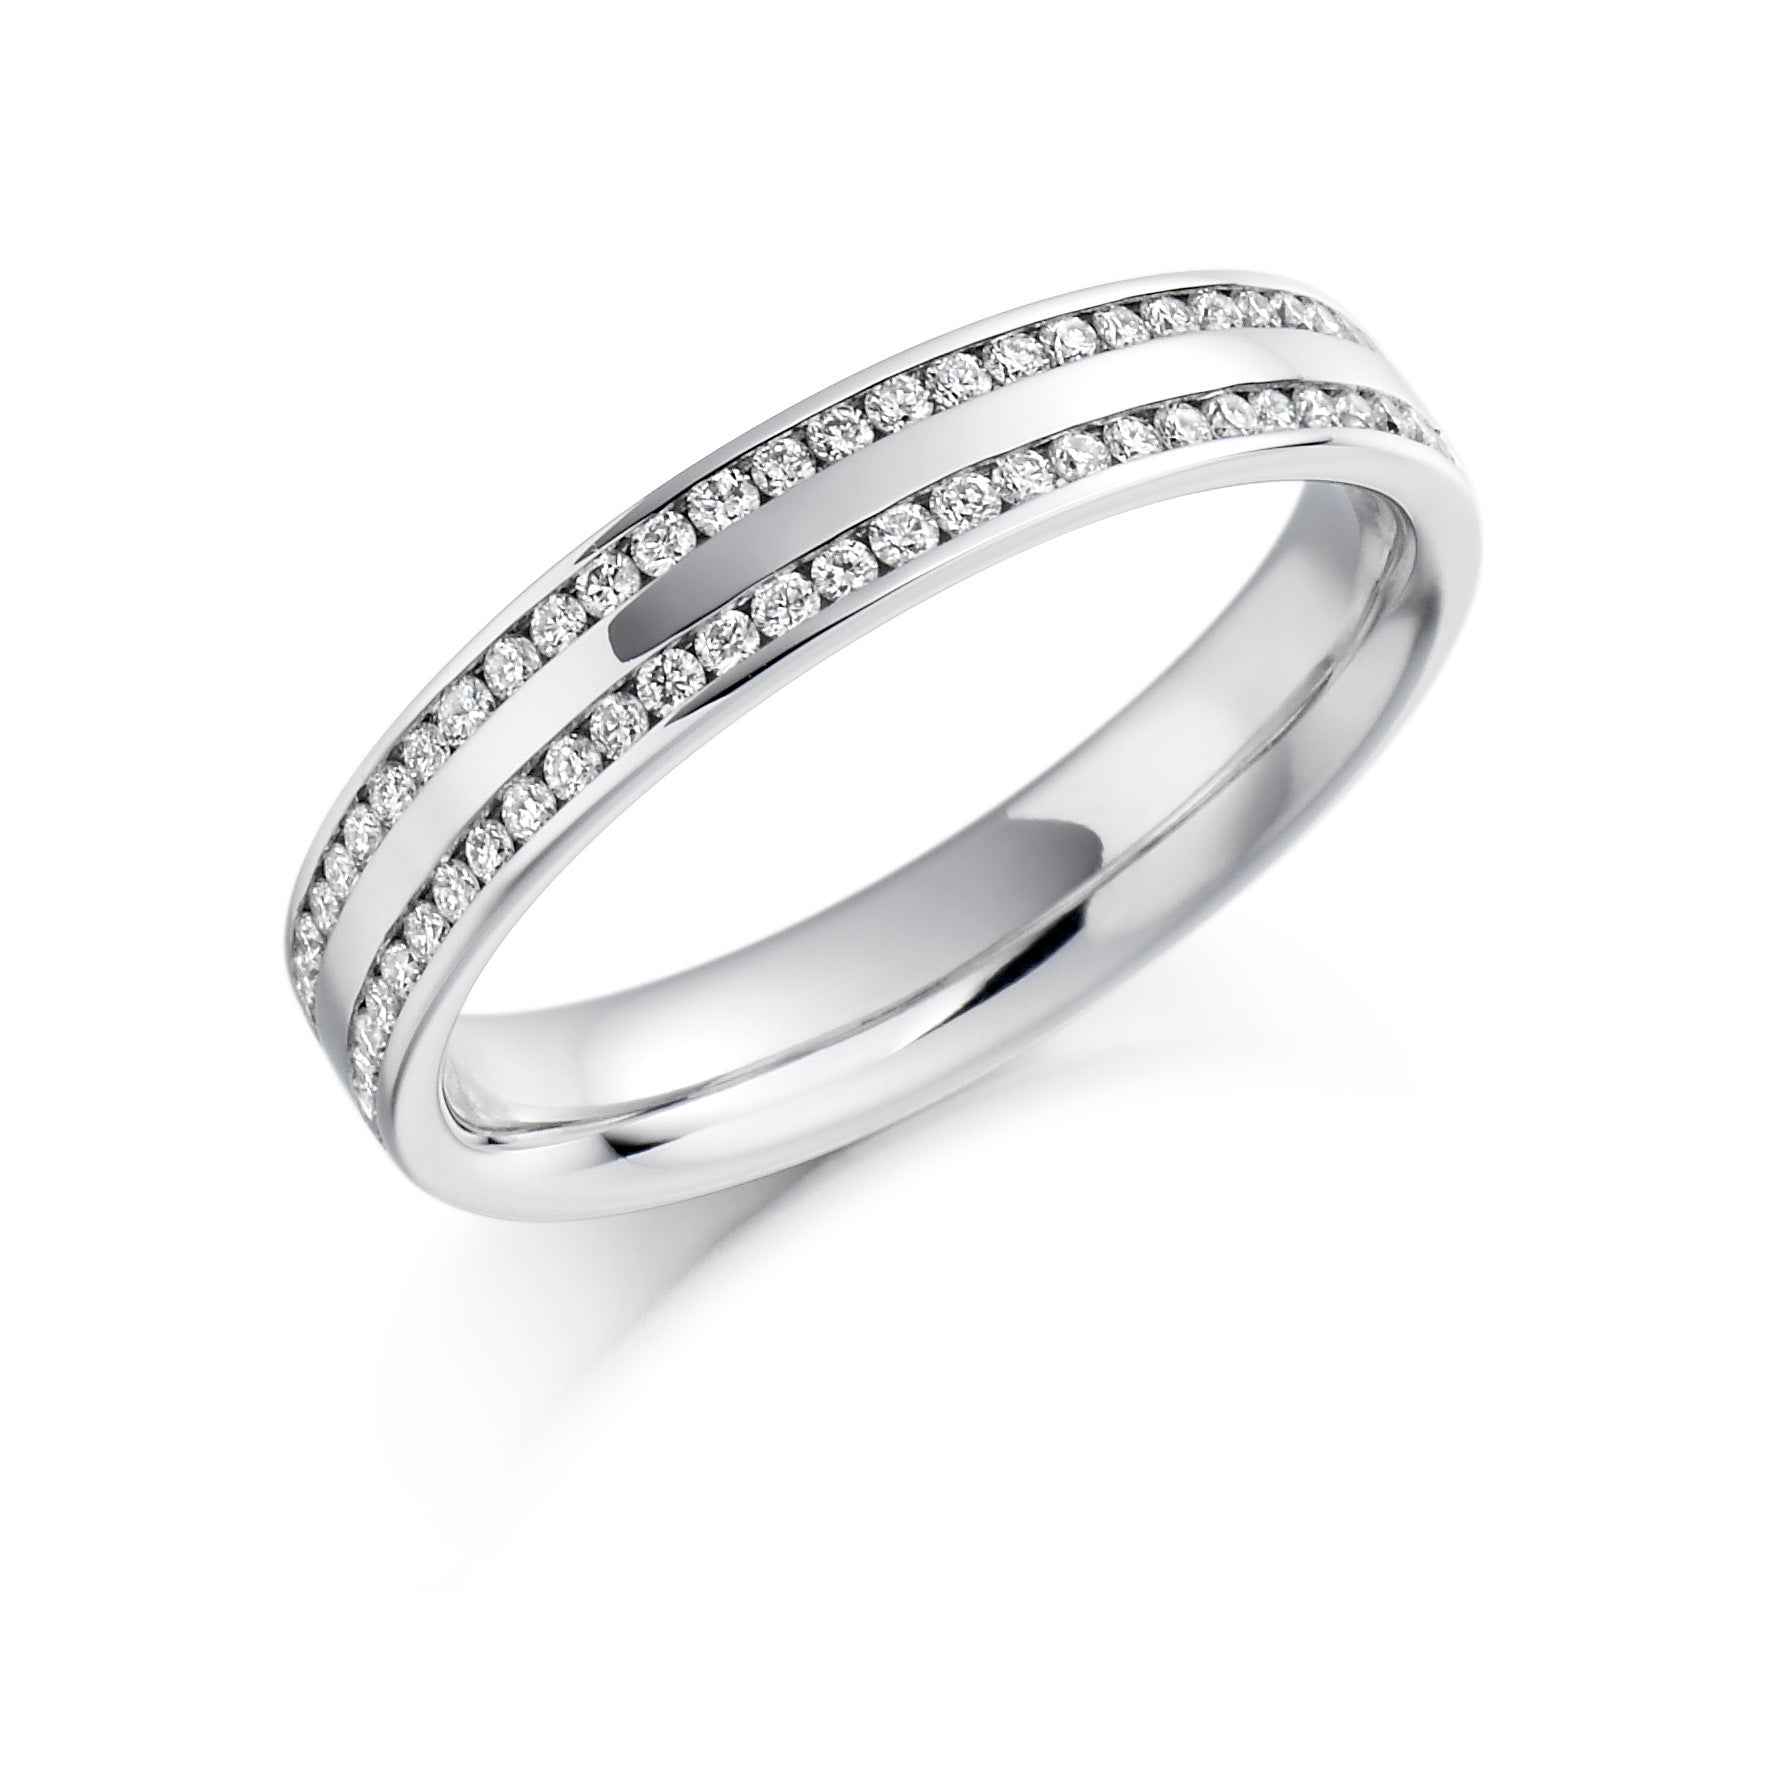 0.26ct Round Brilliant Cut Wedding Ring - (Home Try-On)